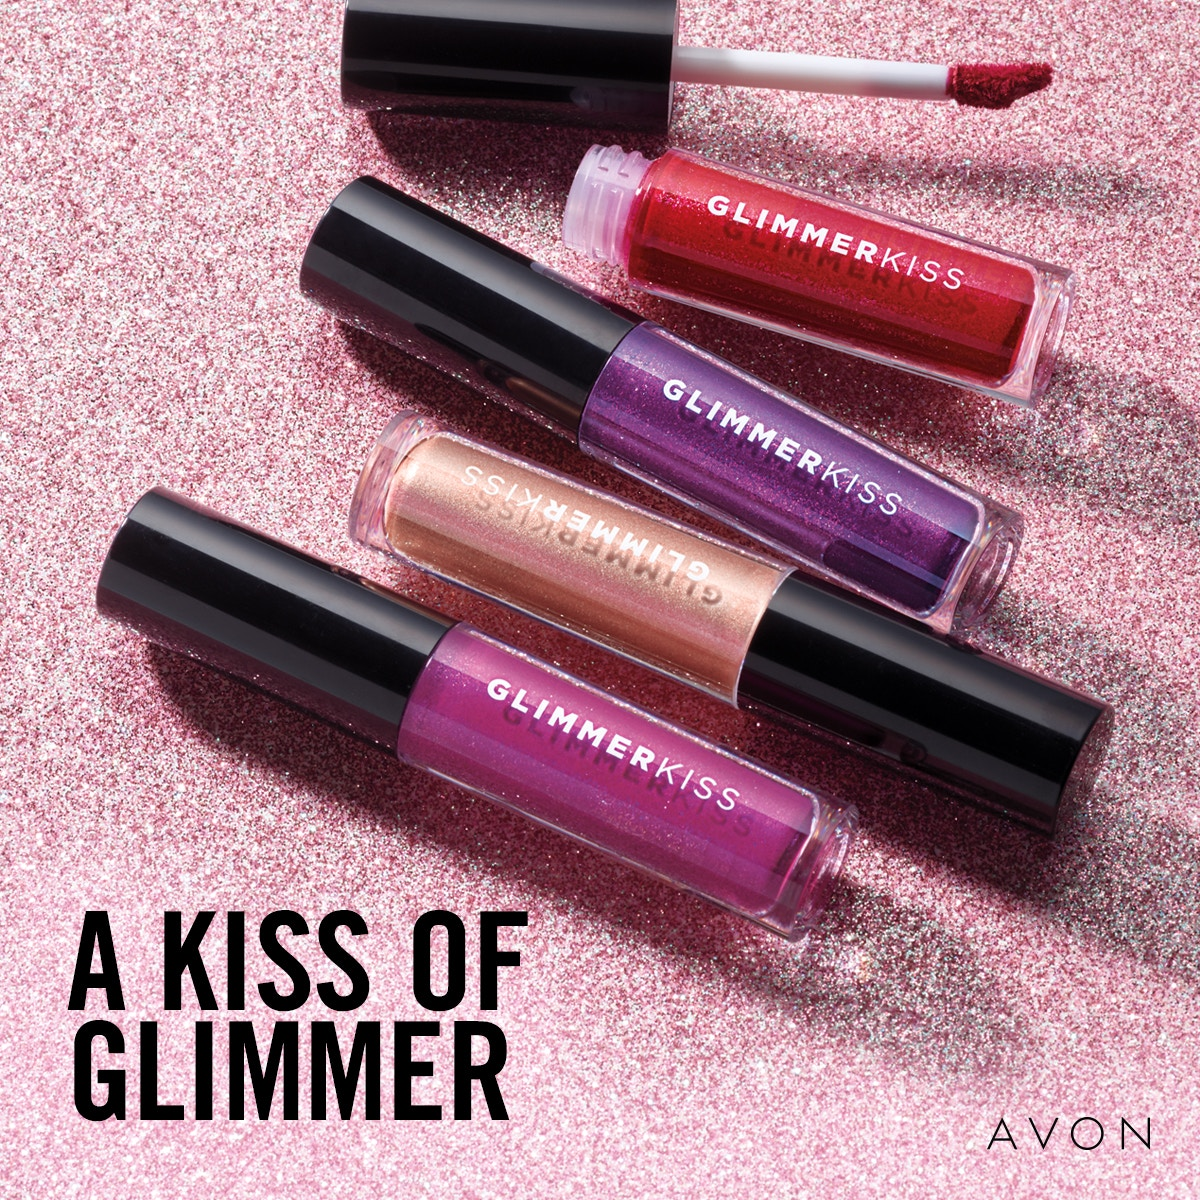 A silky smooth gel cream that steals the show! http://go.youravon.com/3n4h5z #lipstick #makeup #makeupaddict #beautyproducts #BeautifulWomanpic.twitter.com/zYbnFLKWgm